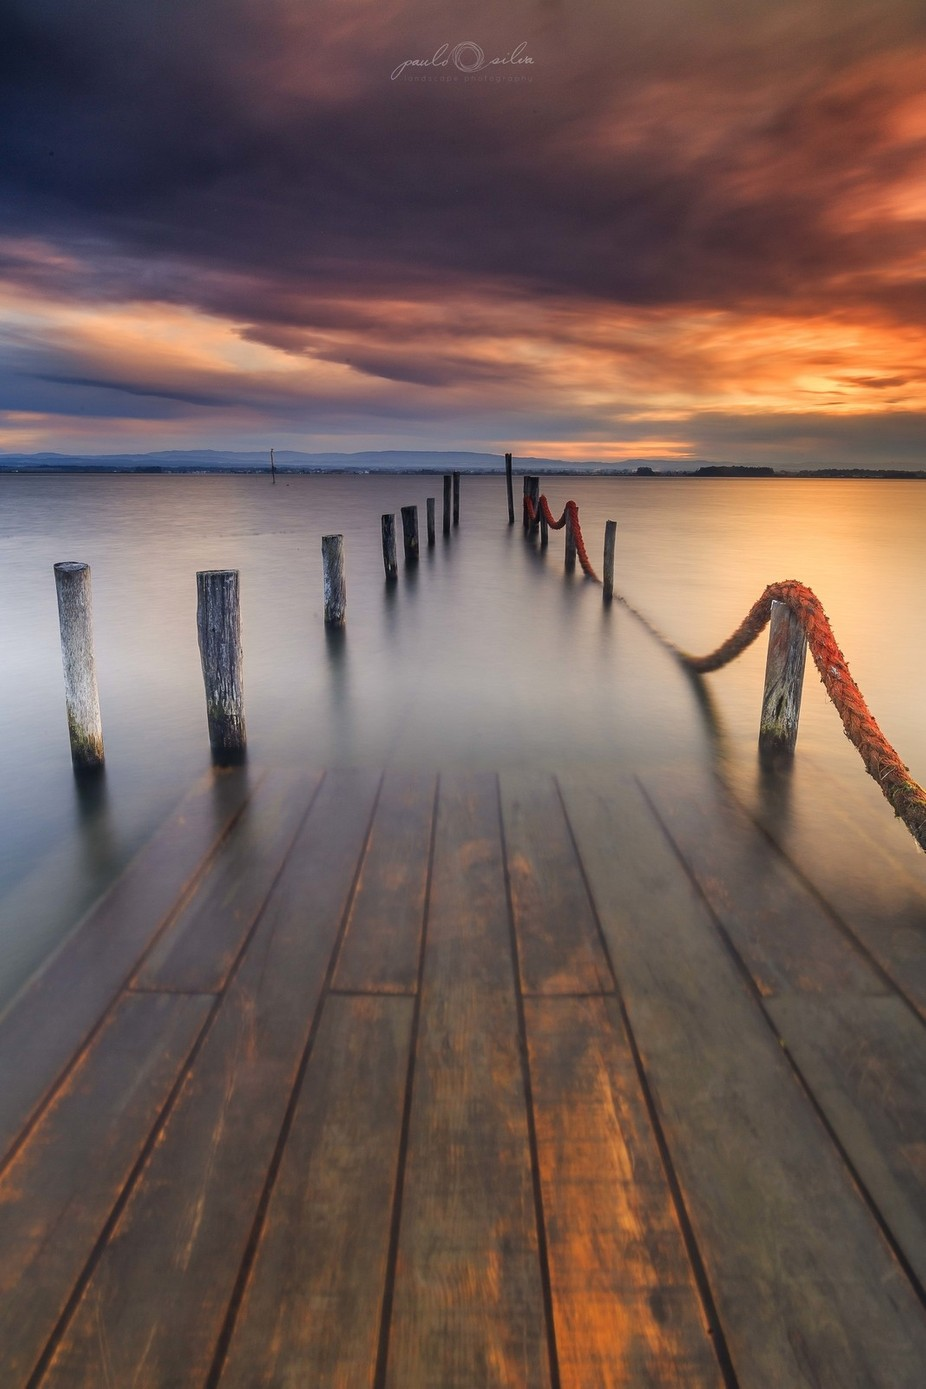 Old Pier, Ria de aveiro by pauloprinter - Composition And Leading Lines Photo Contest